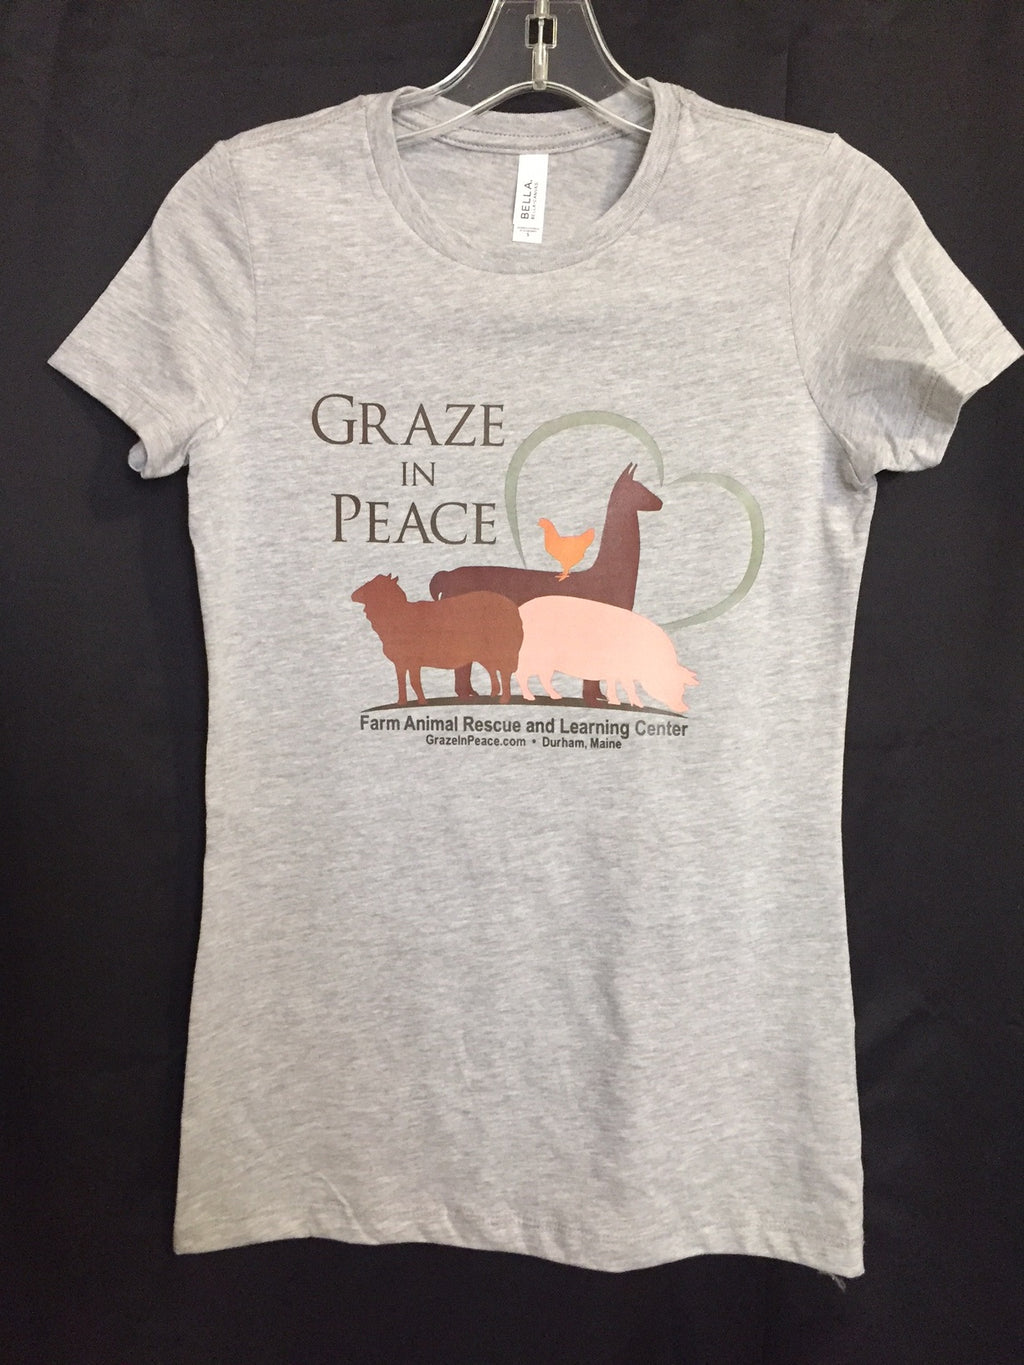 Graze in Peace Ladies Slim Fit Tee - Ruff Life Rescue Wear